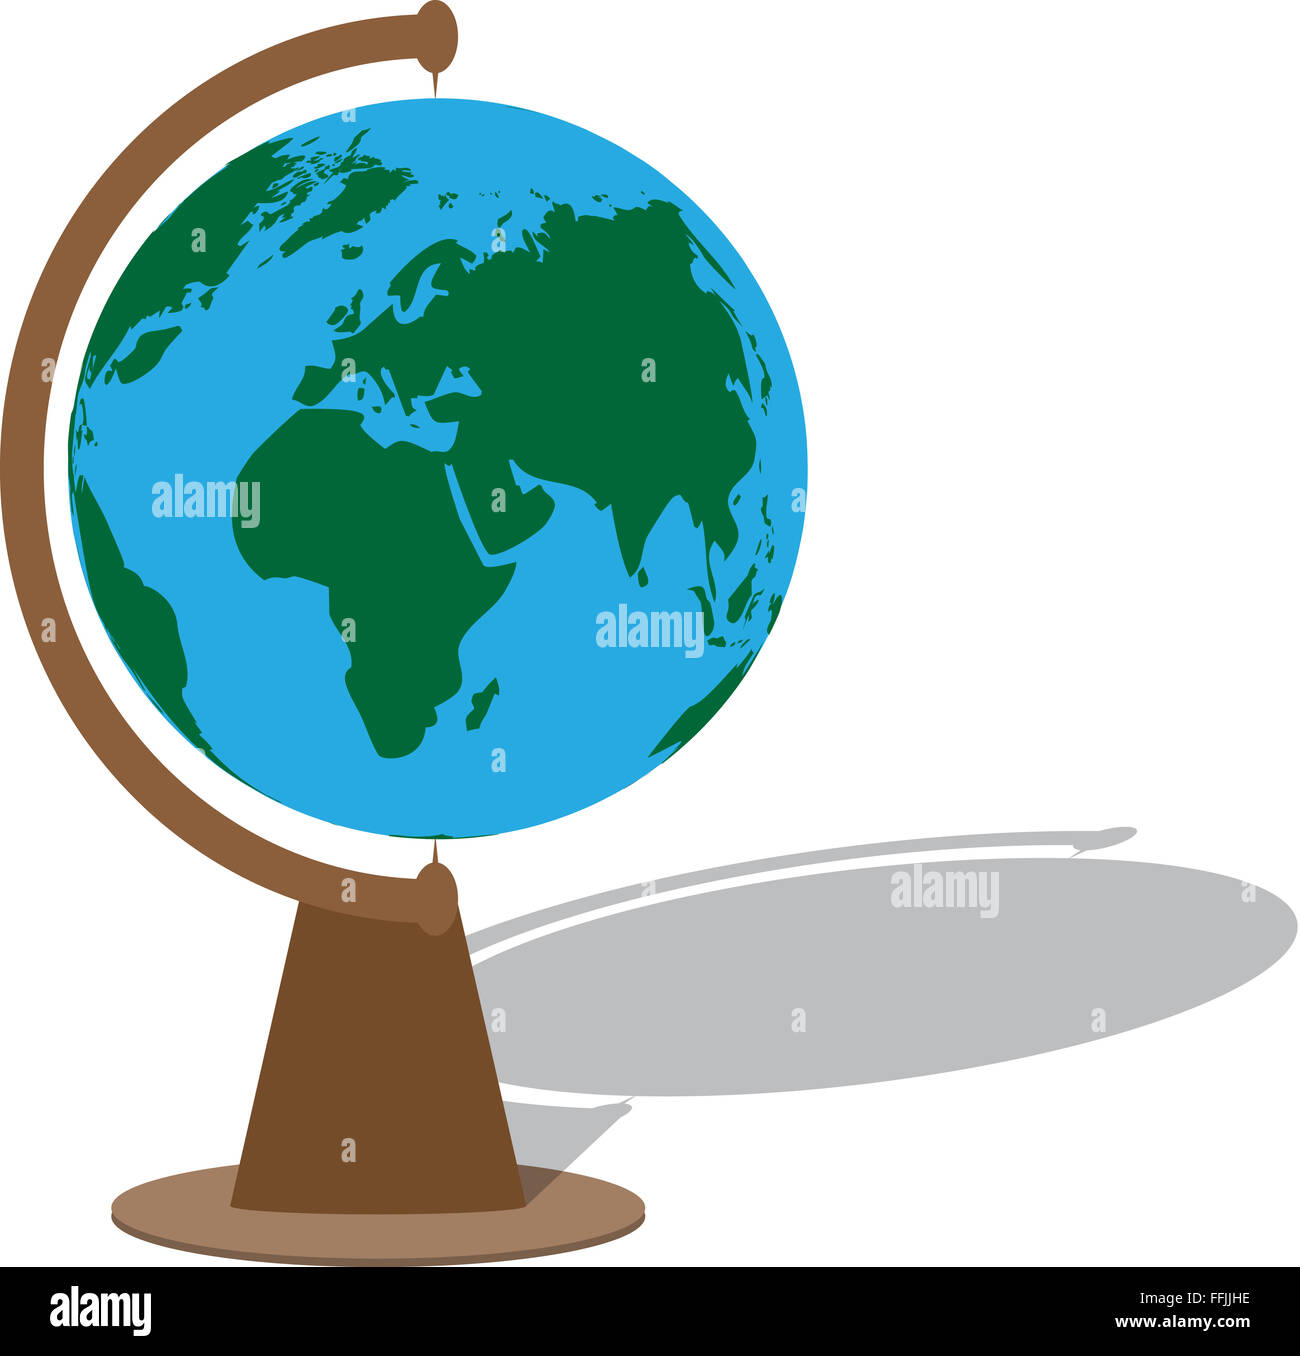 World Map Globe Ball. Globe with shadow  planet sphere ball world earth map geography Vector abstract flat design illustration